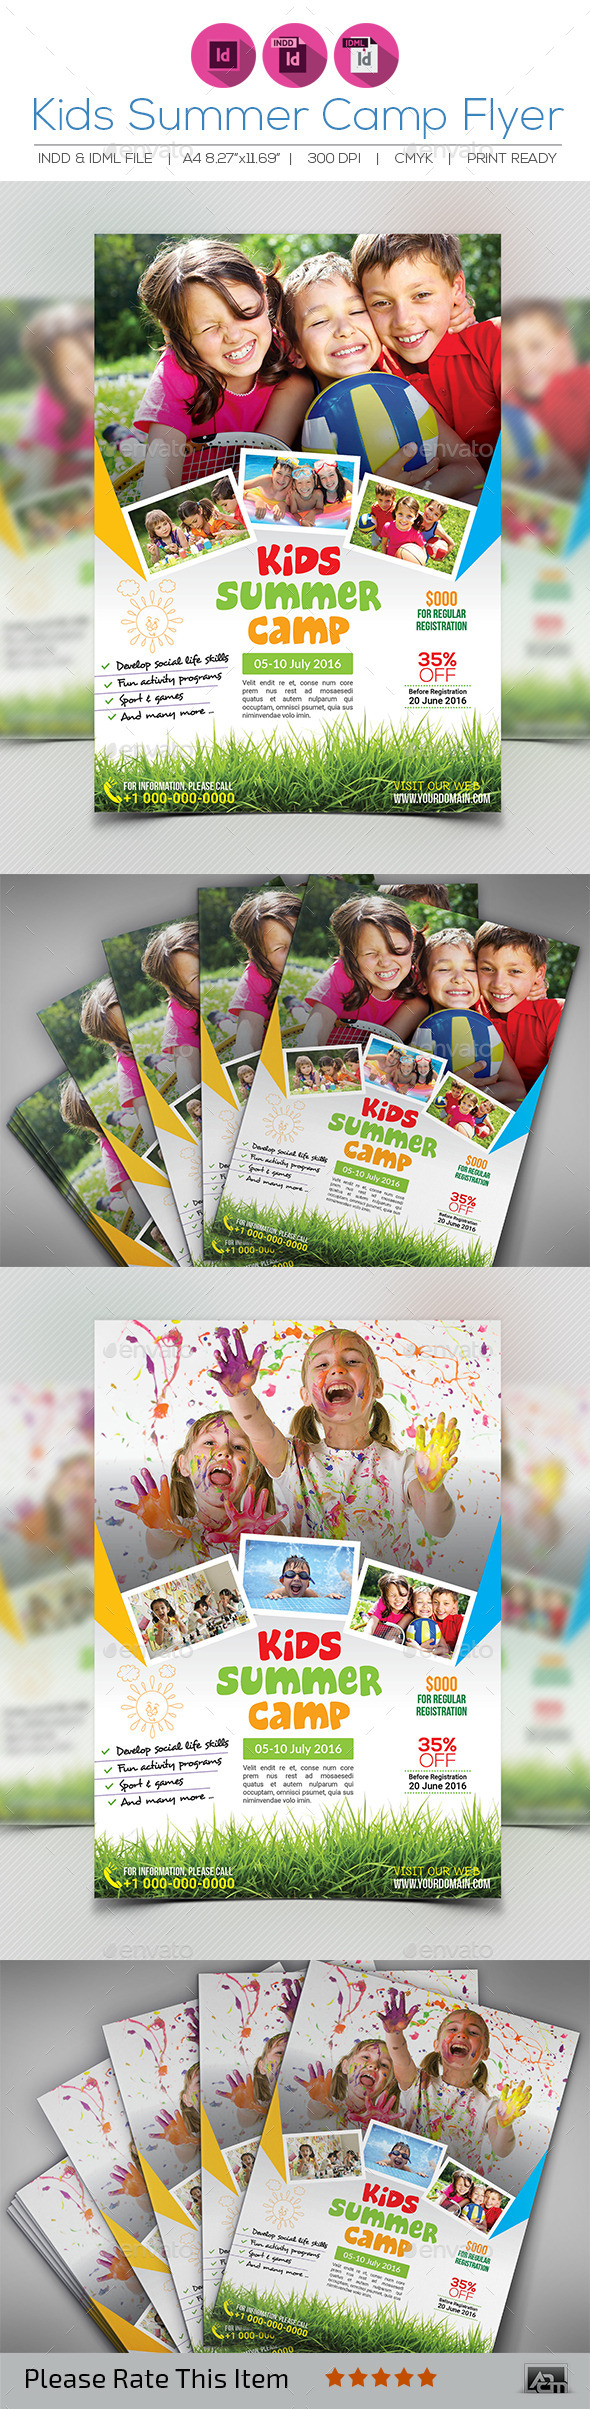 Kids Summer Camp Flyer Template — Indesign Indd #kid #ad • Available Here →